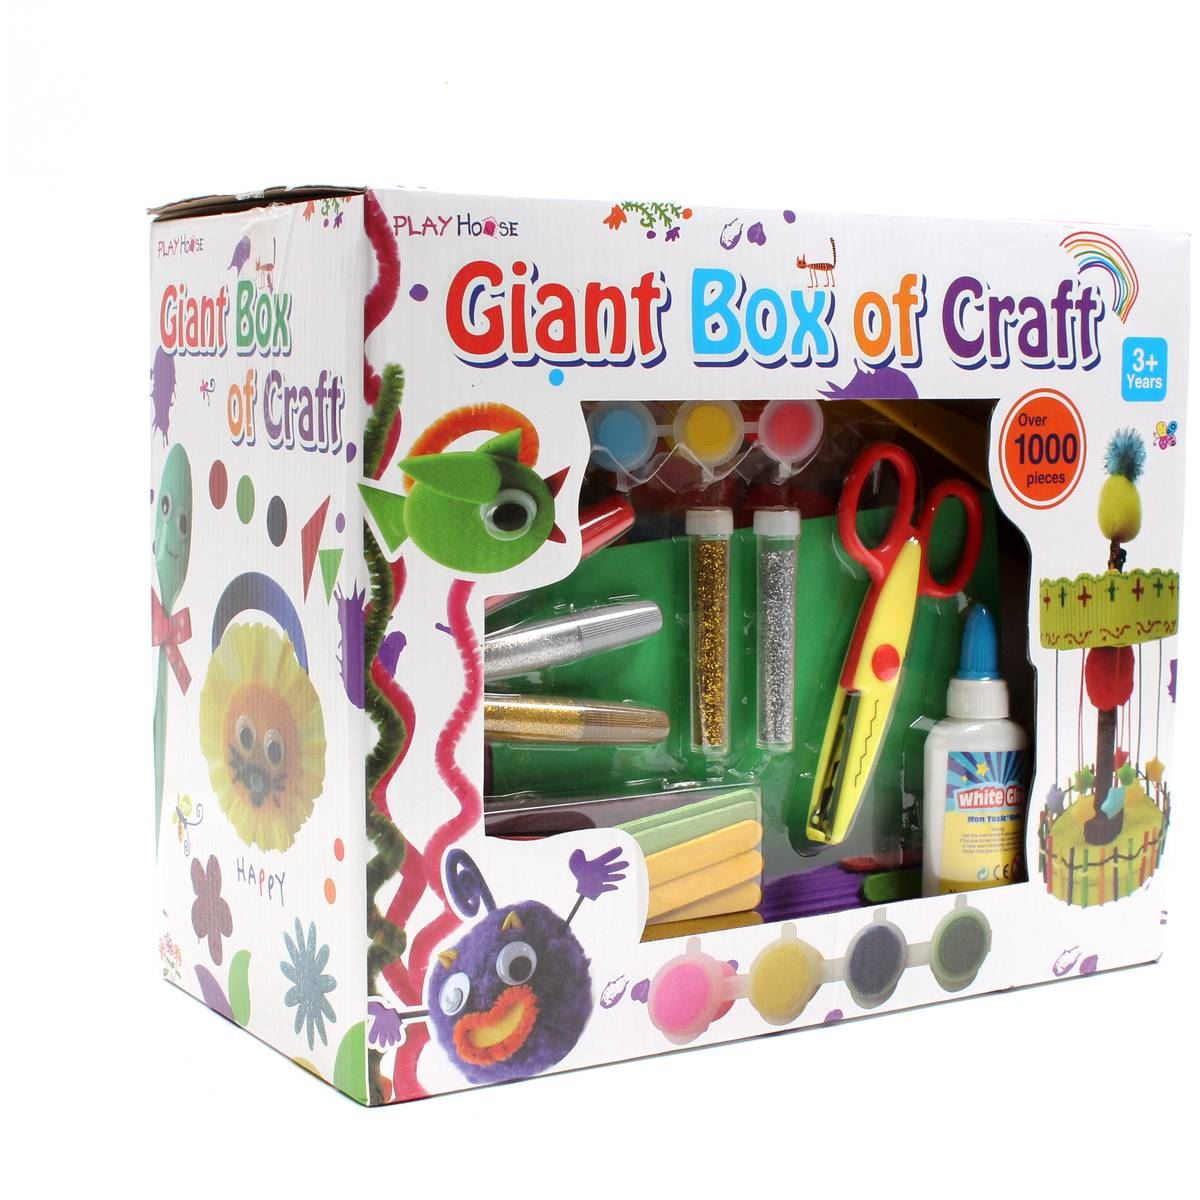 Hobbycraft childrens giant box of craft 1000 pieces glue for Craft boxes for children